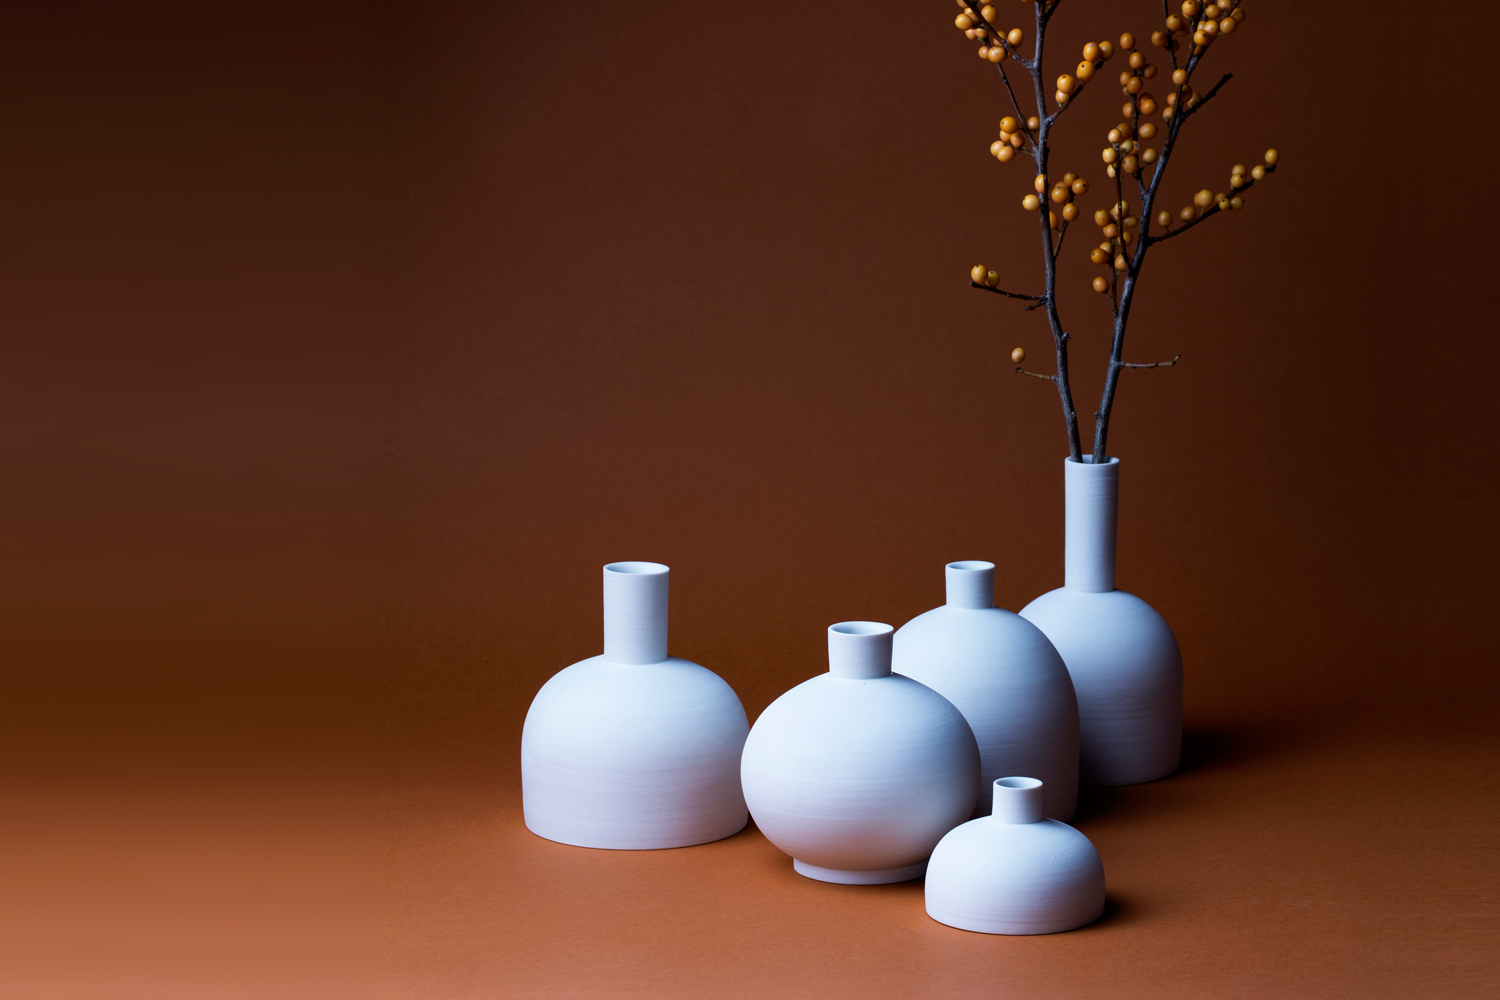 alissa-coe-shapes-vases-autumn-welcome-gallery.jpg